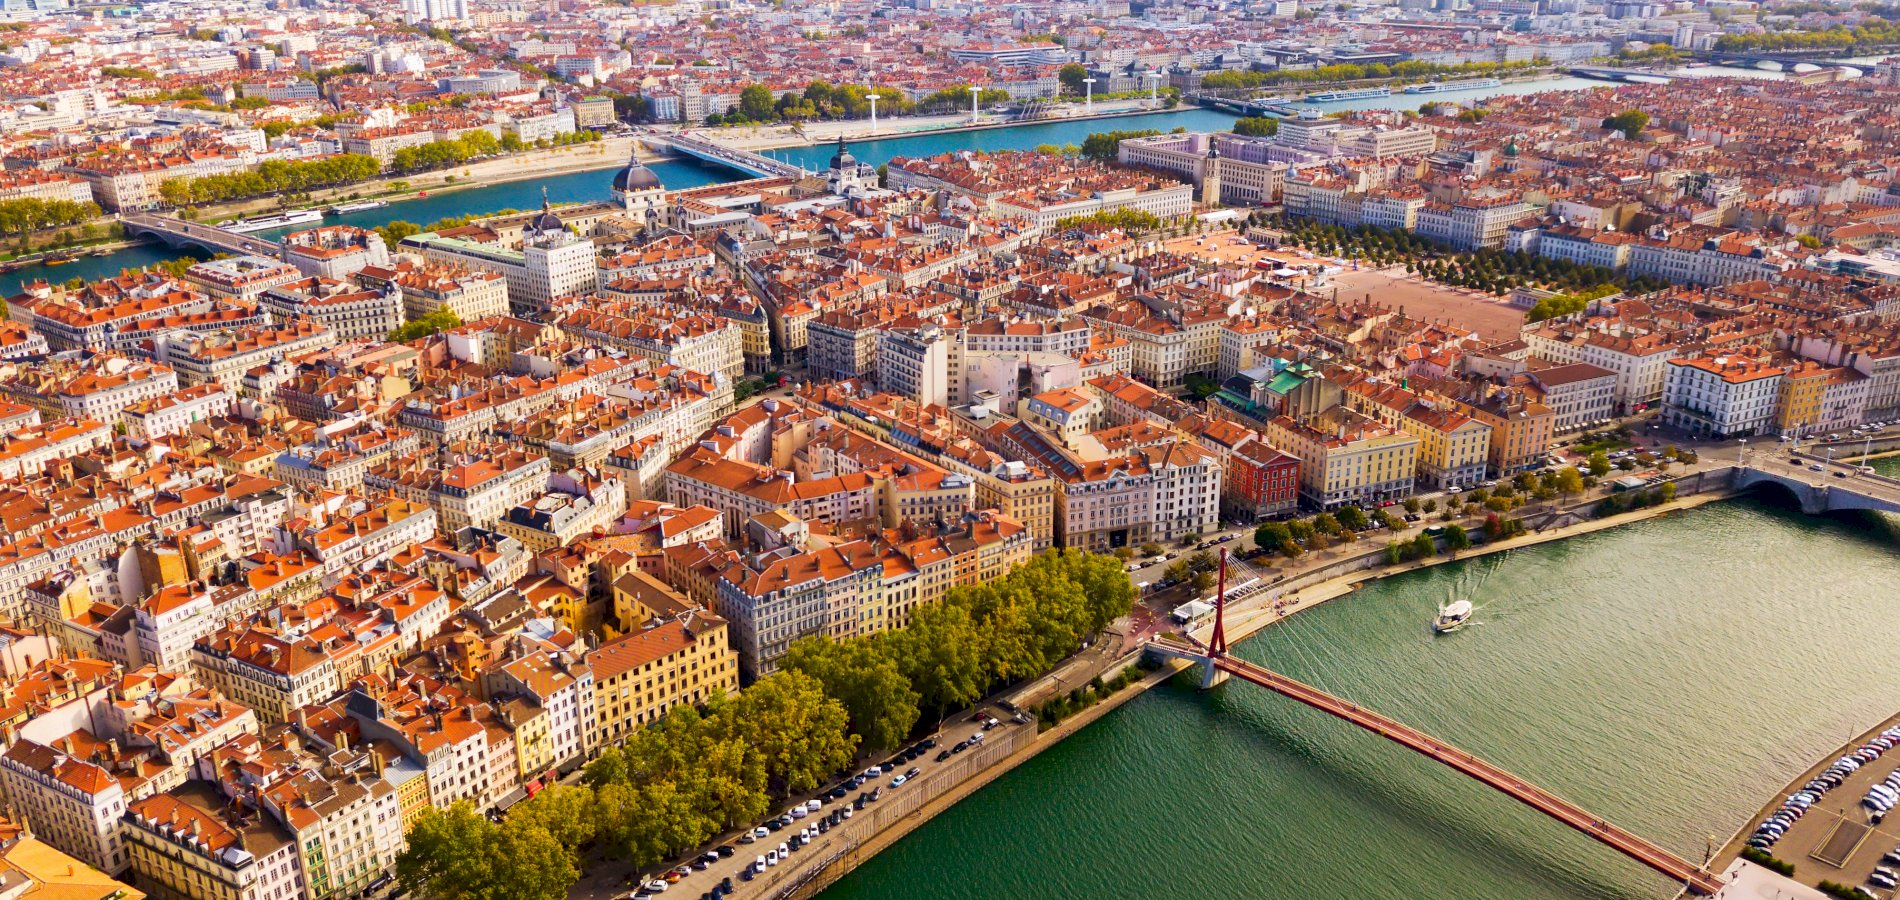 Ophorus Tours - From Sarlat la Canéda to Lyon Private Transfer